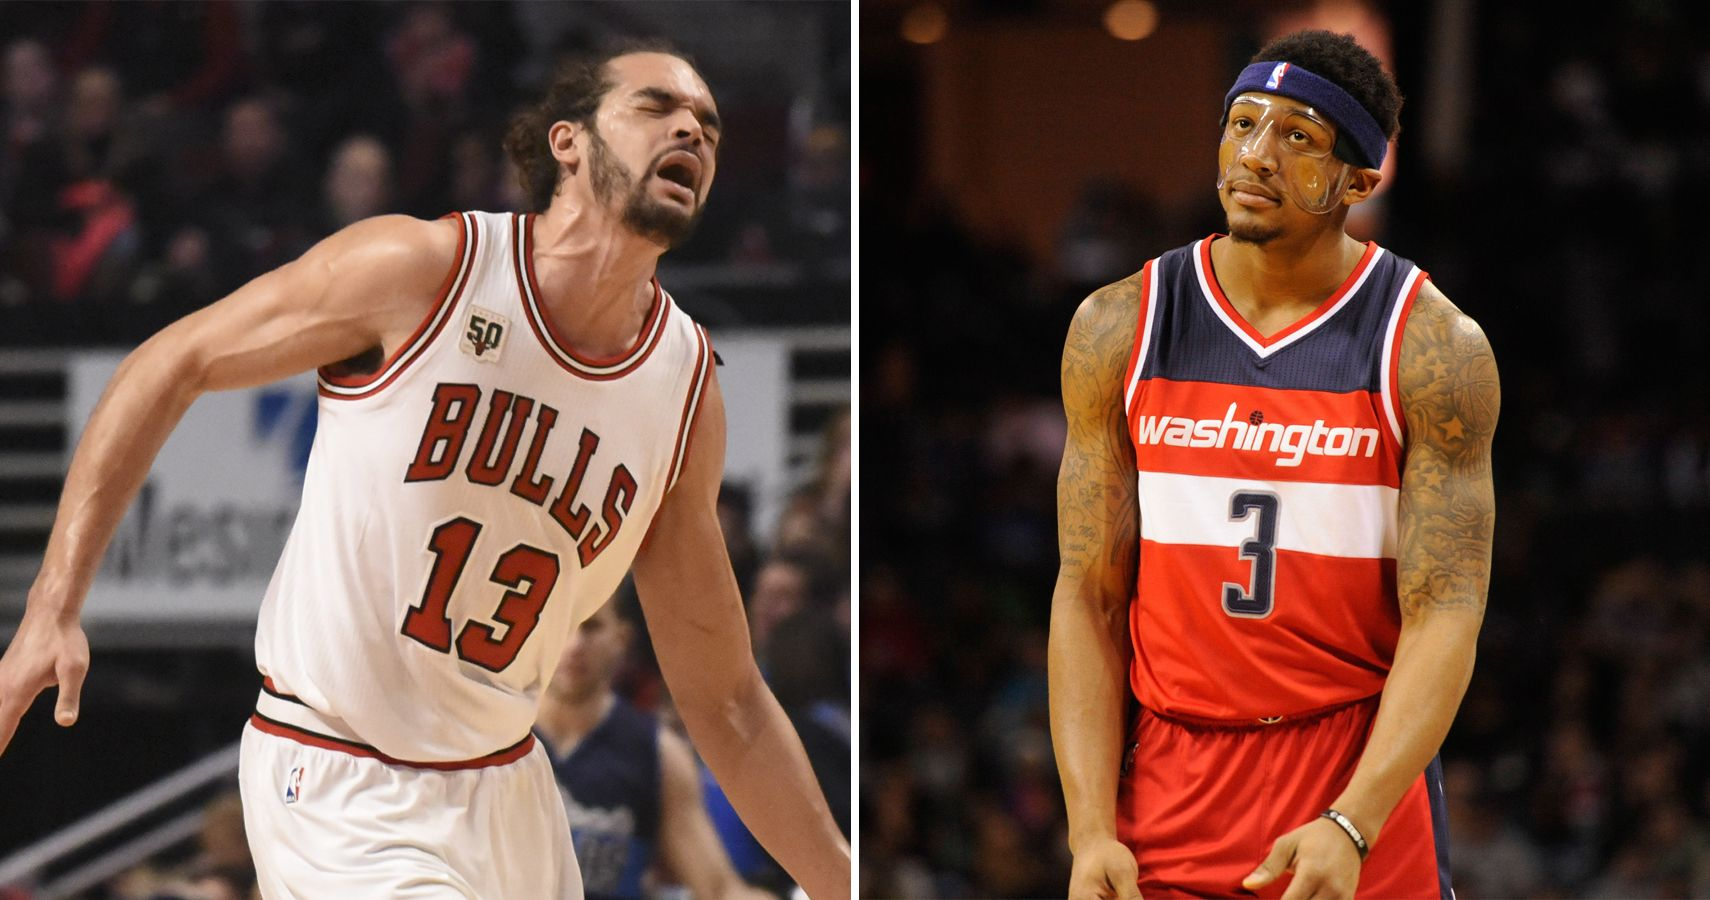 Top 15 NBA Free Agents That Got Overpaid This Summer